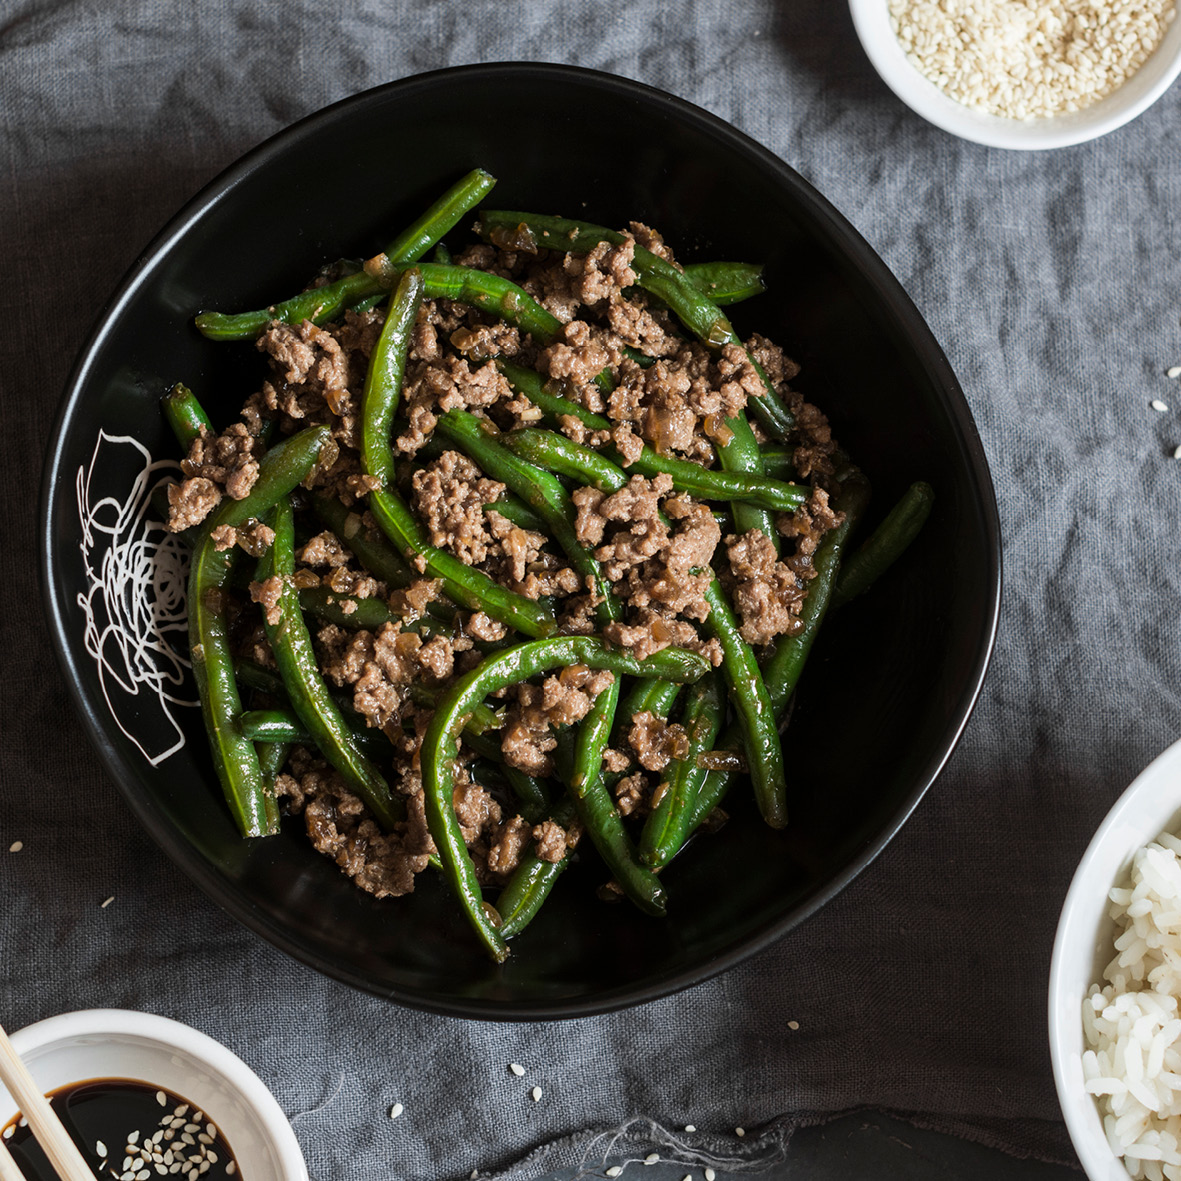 sichuan_style_pork_and_green_bean_stirfry.jpg